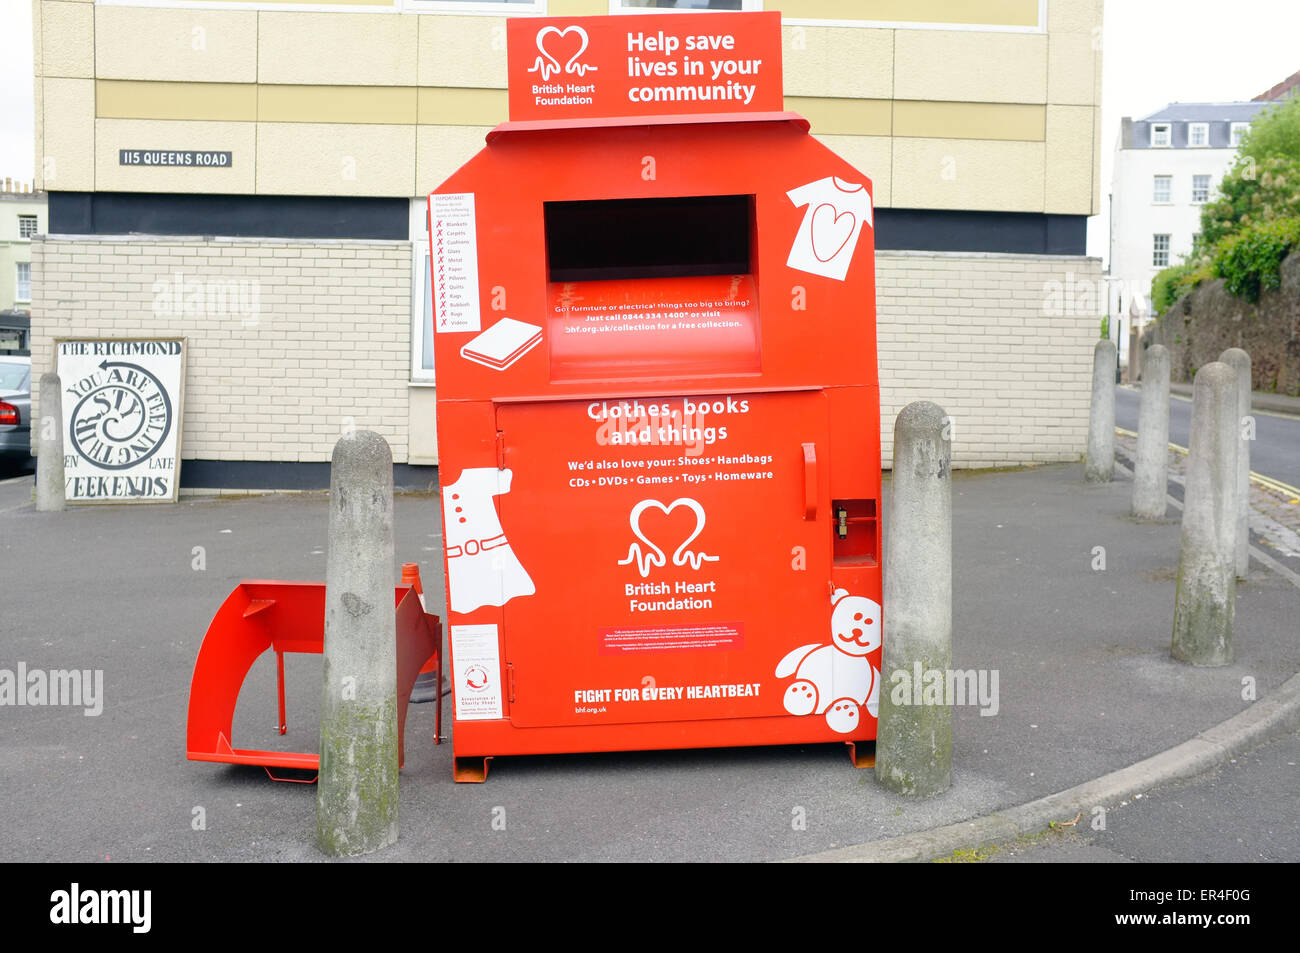 A red British Heart Foundation donations bin on the streets of Bristol. - Stock Image